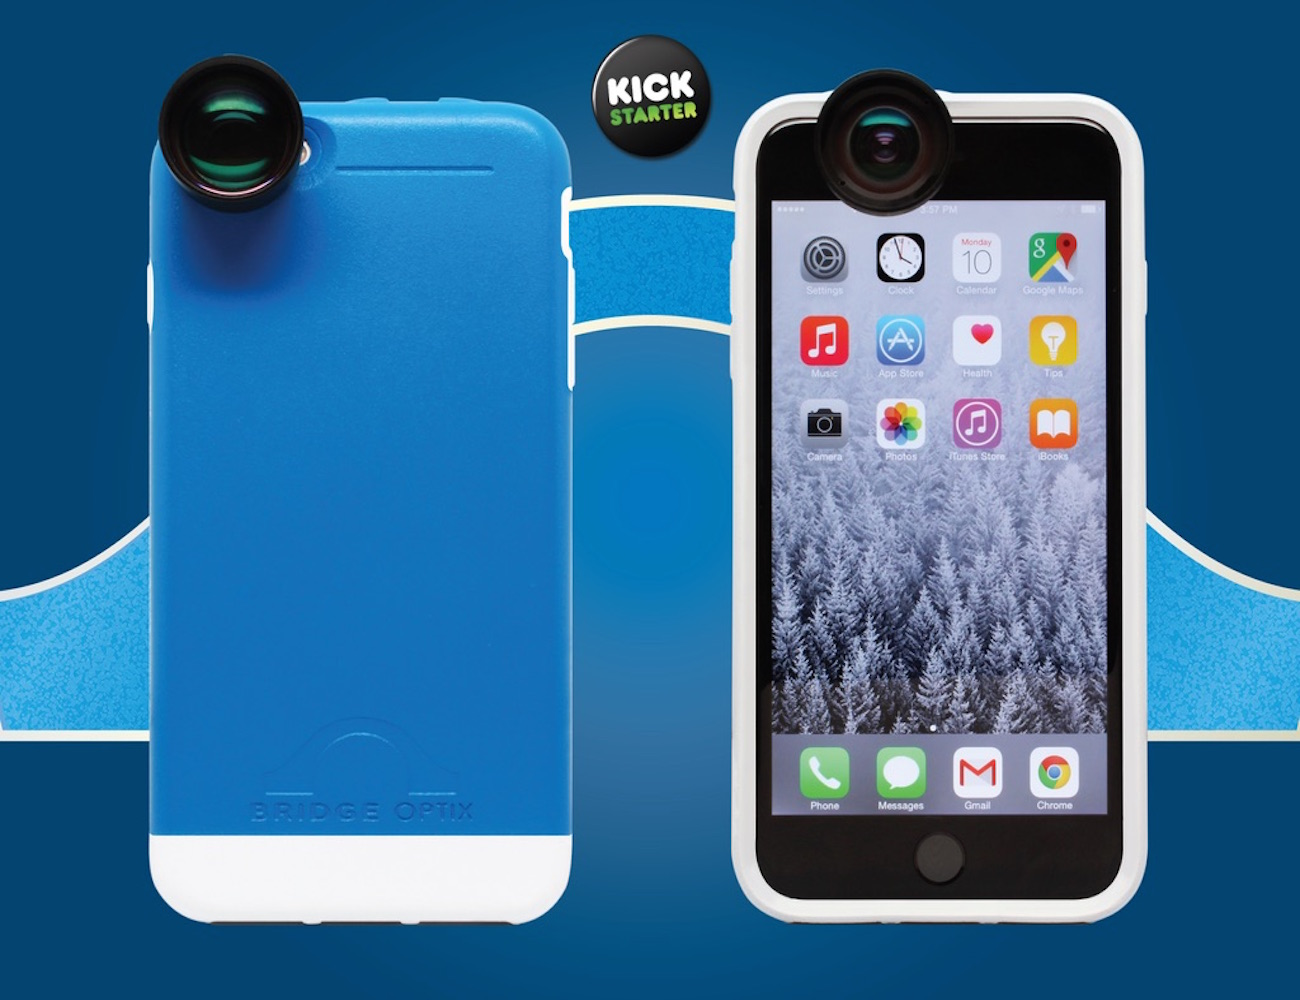 Bridge+Optix+Case+And+Lens+System+For+IPhone+6+%26amp%3B+6+Plus